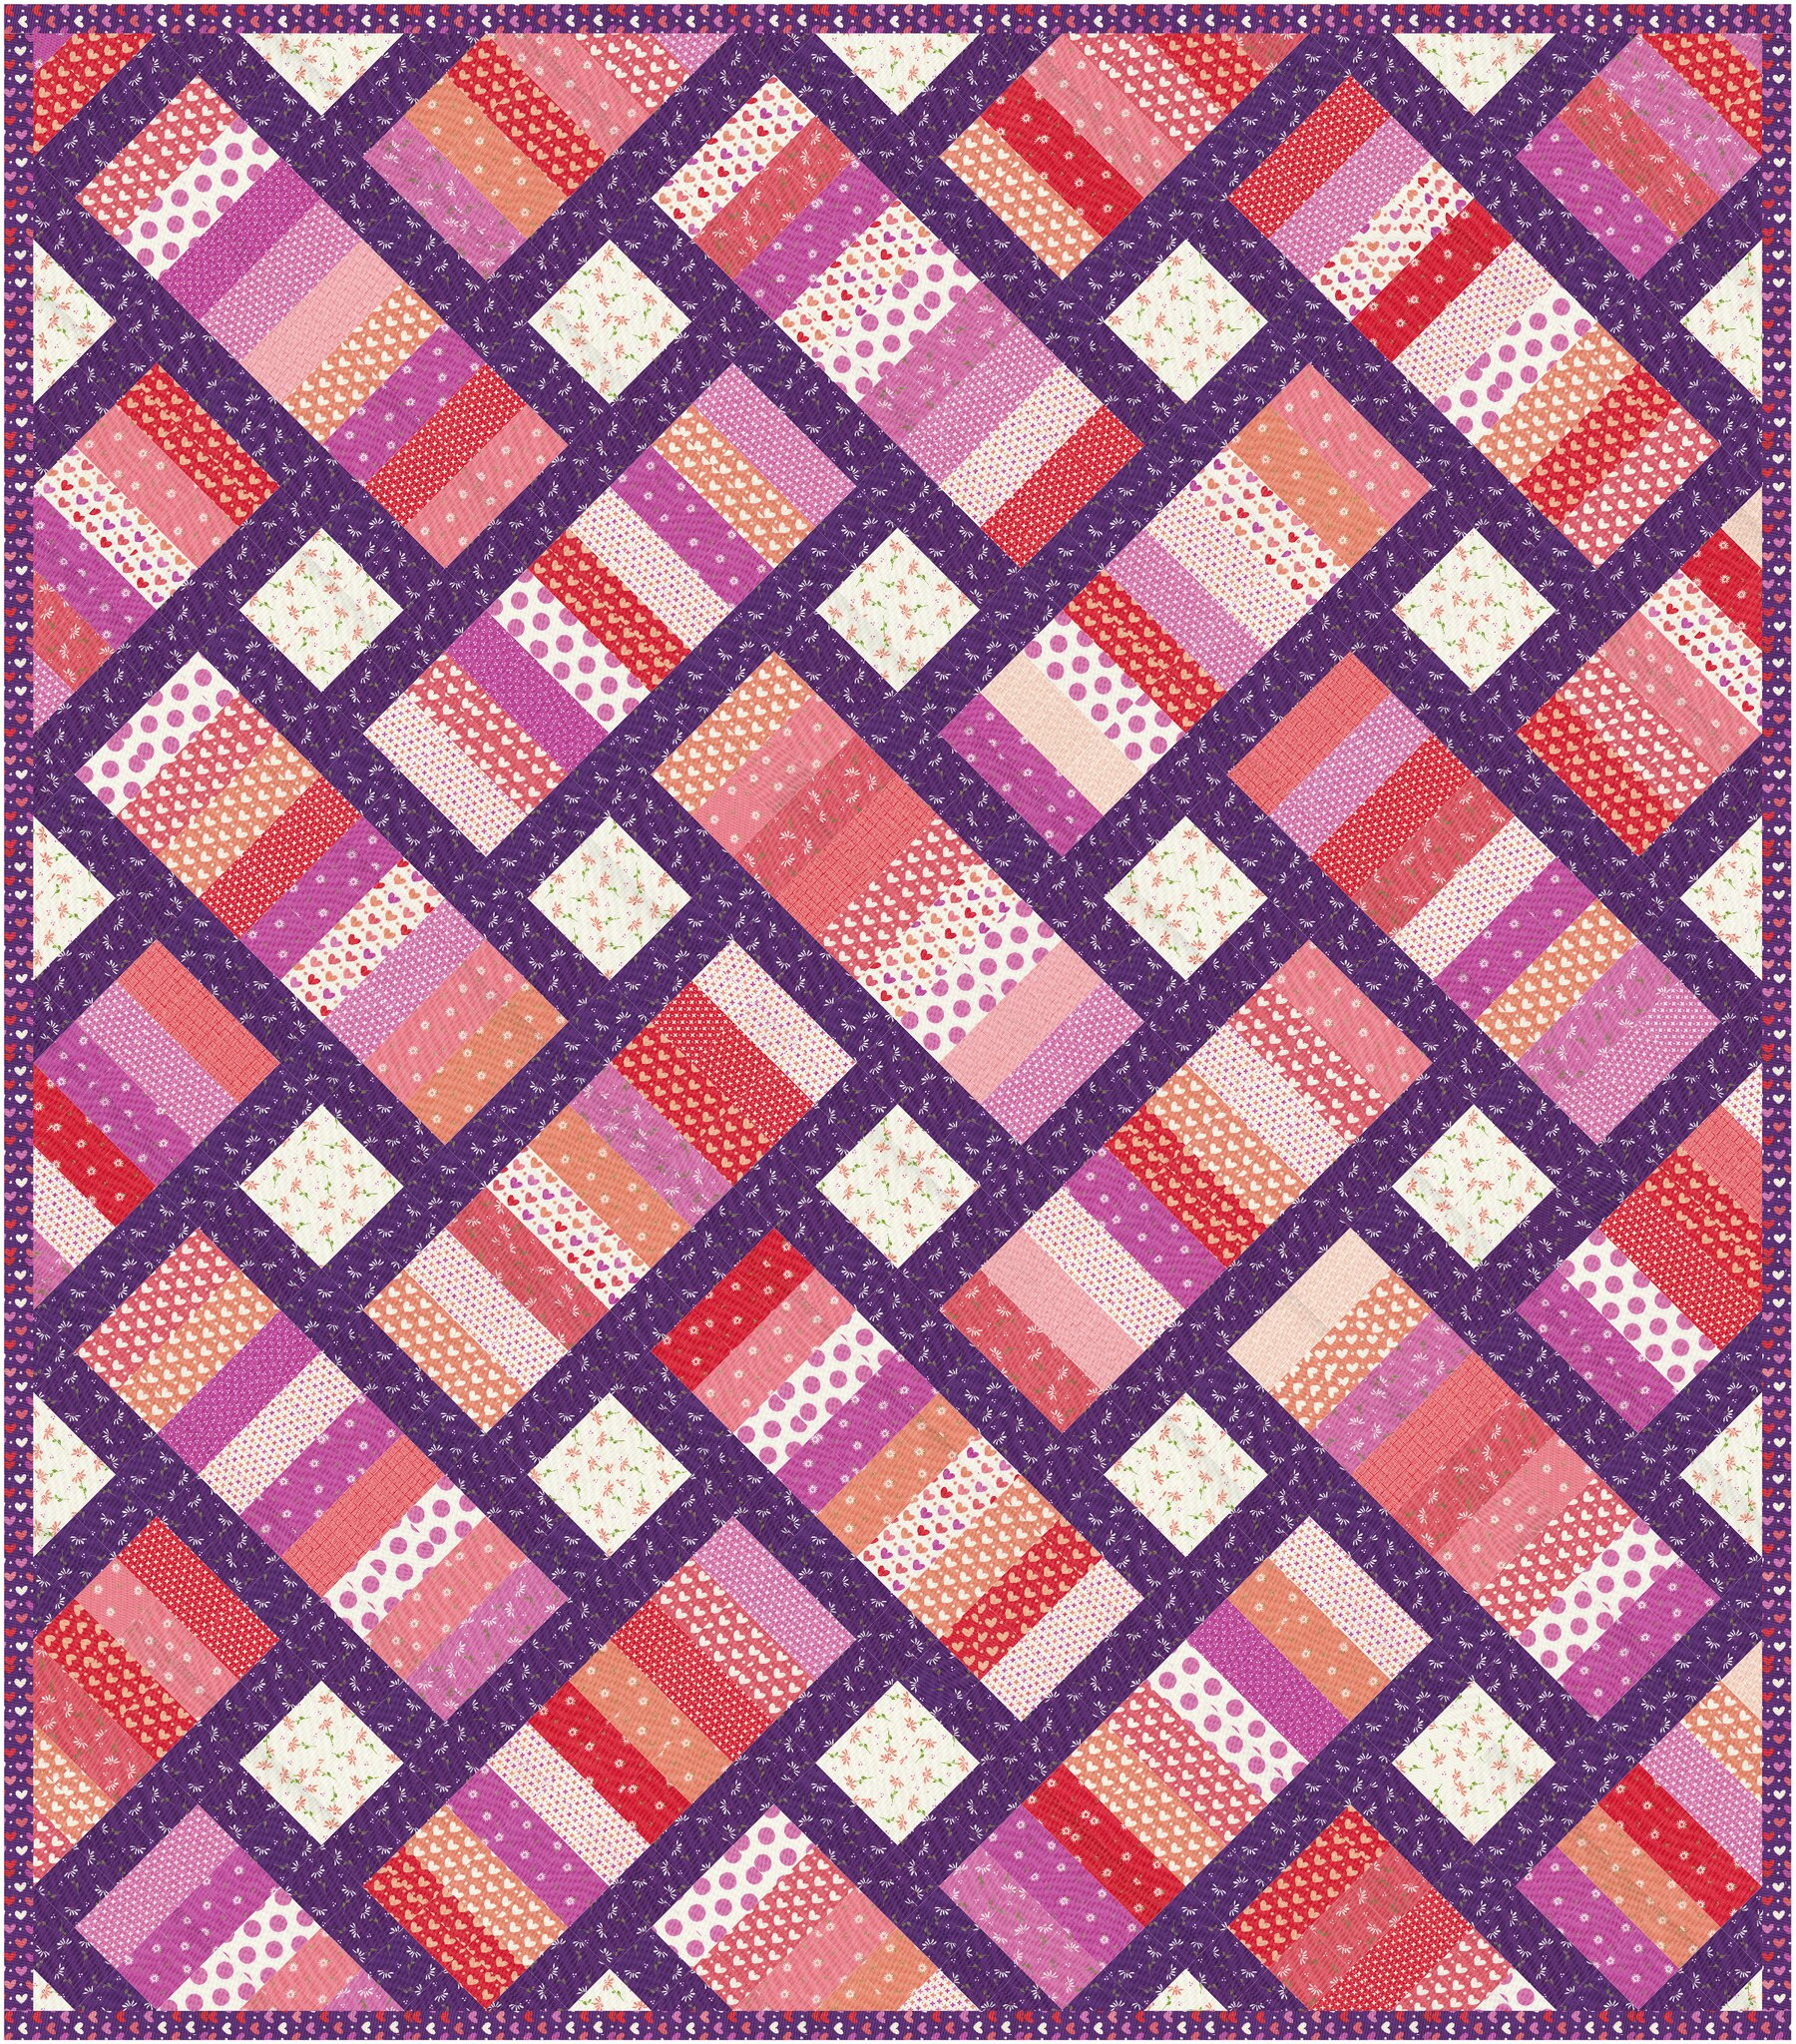 The Iris Quilt in Sincerely Yours - Kitchen Table Quilting